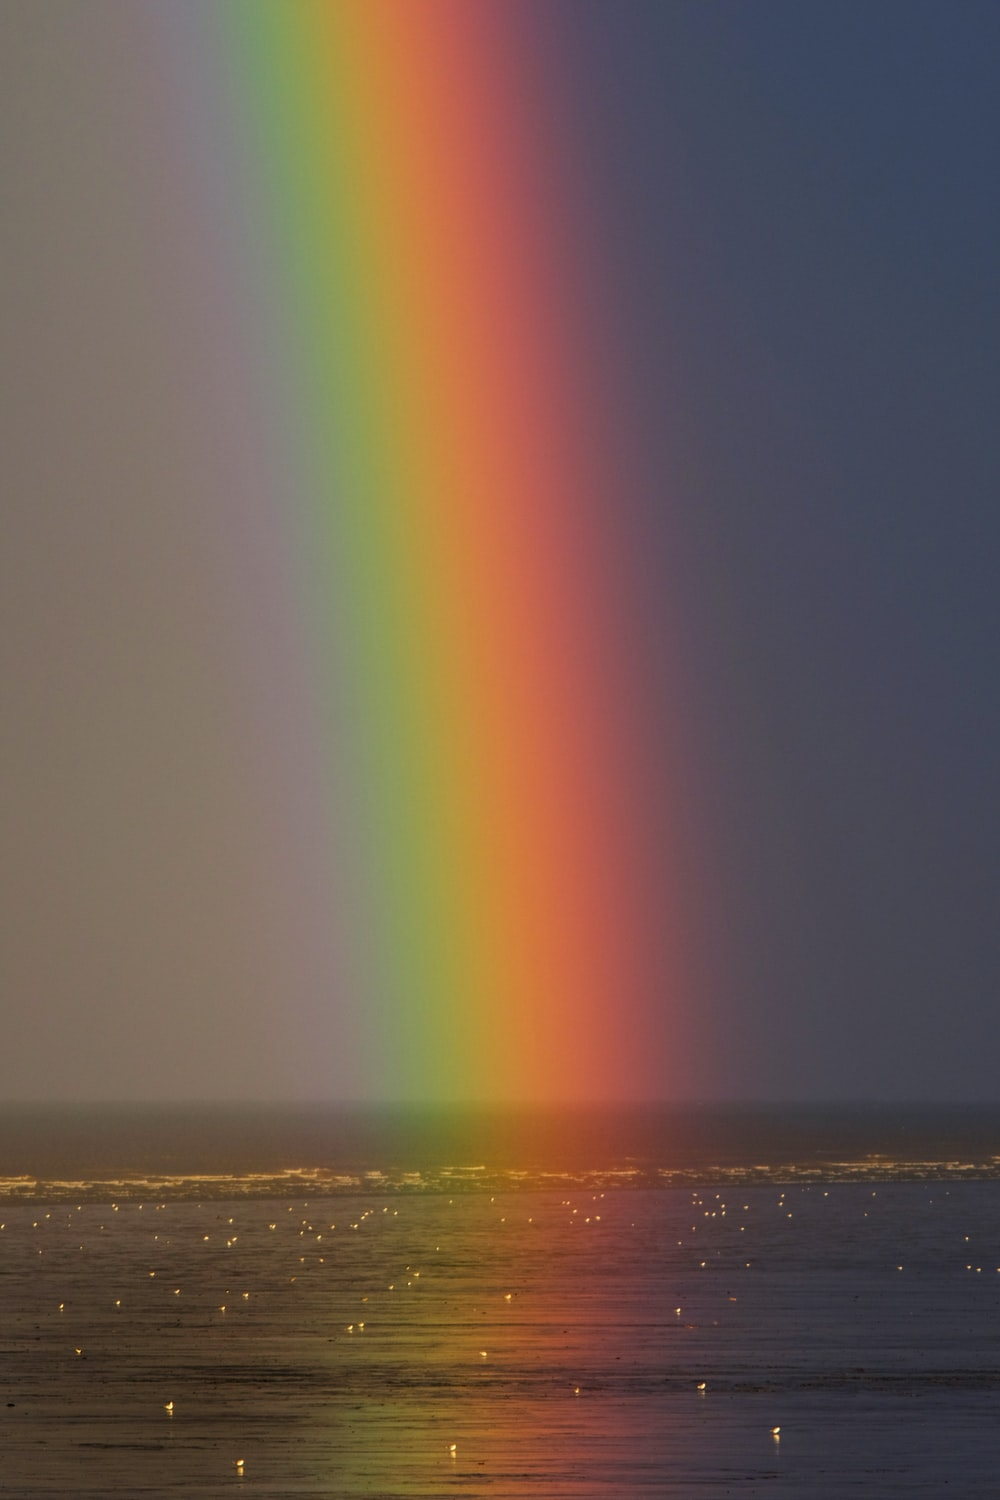 rainbow on body of water